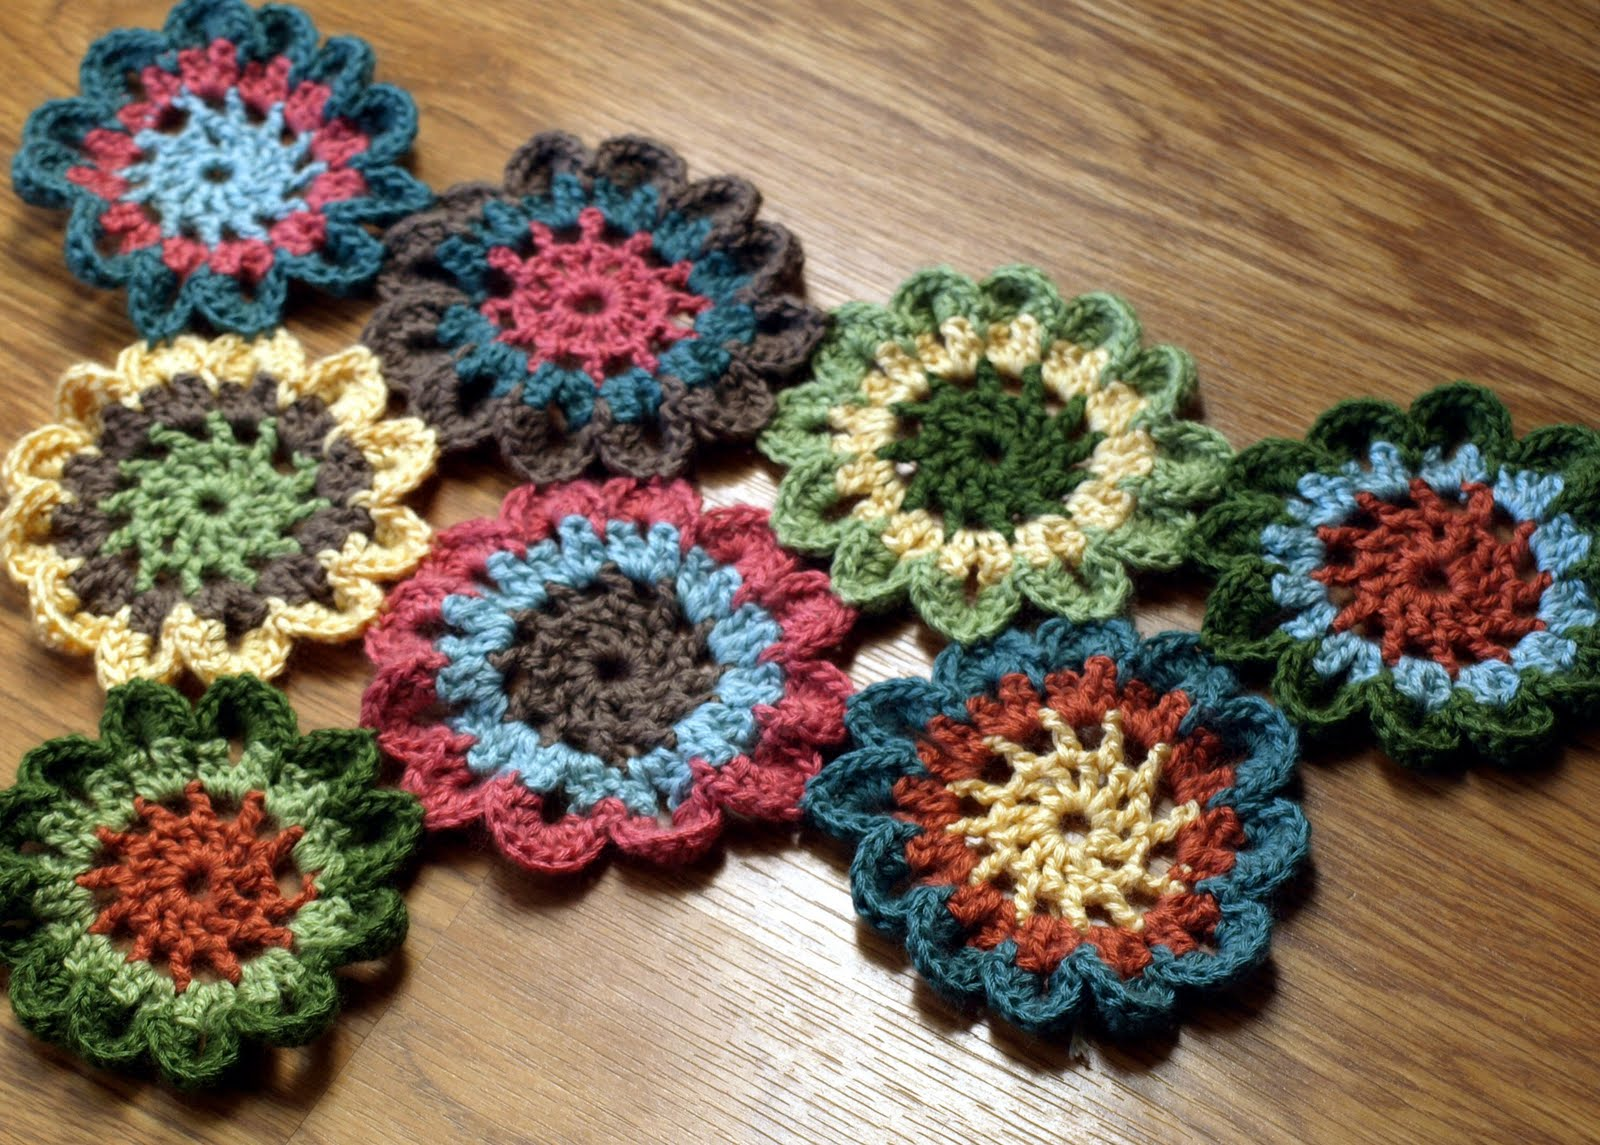 JAPANESE CROCHET PATTERNS - Easy Crochet Patterns